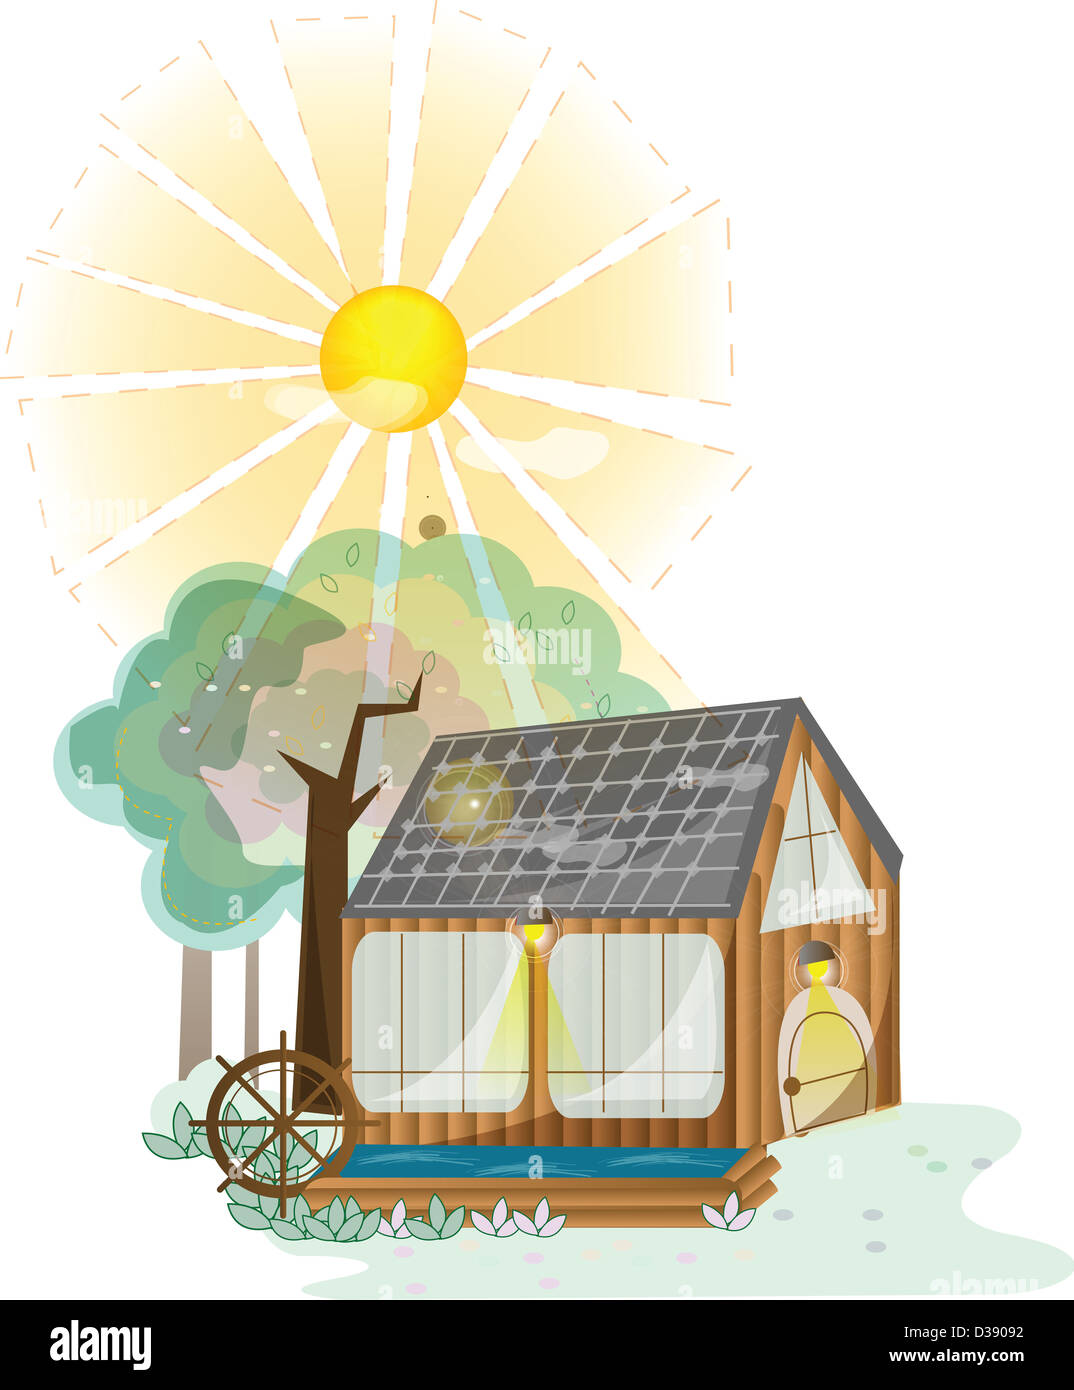 House with solar panels - Stock Image